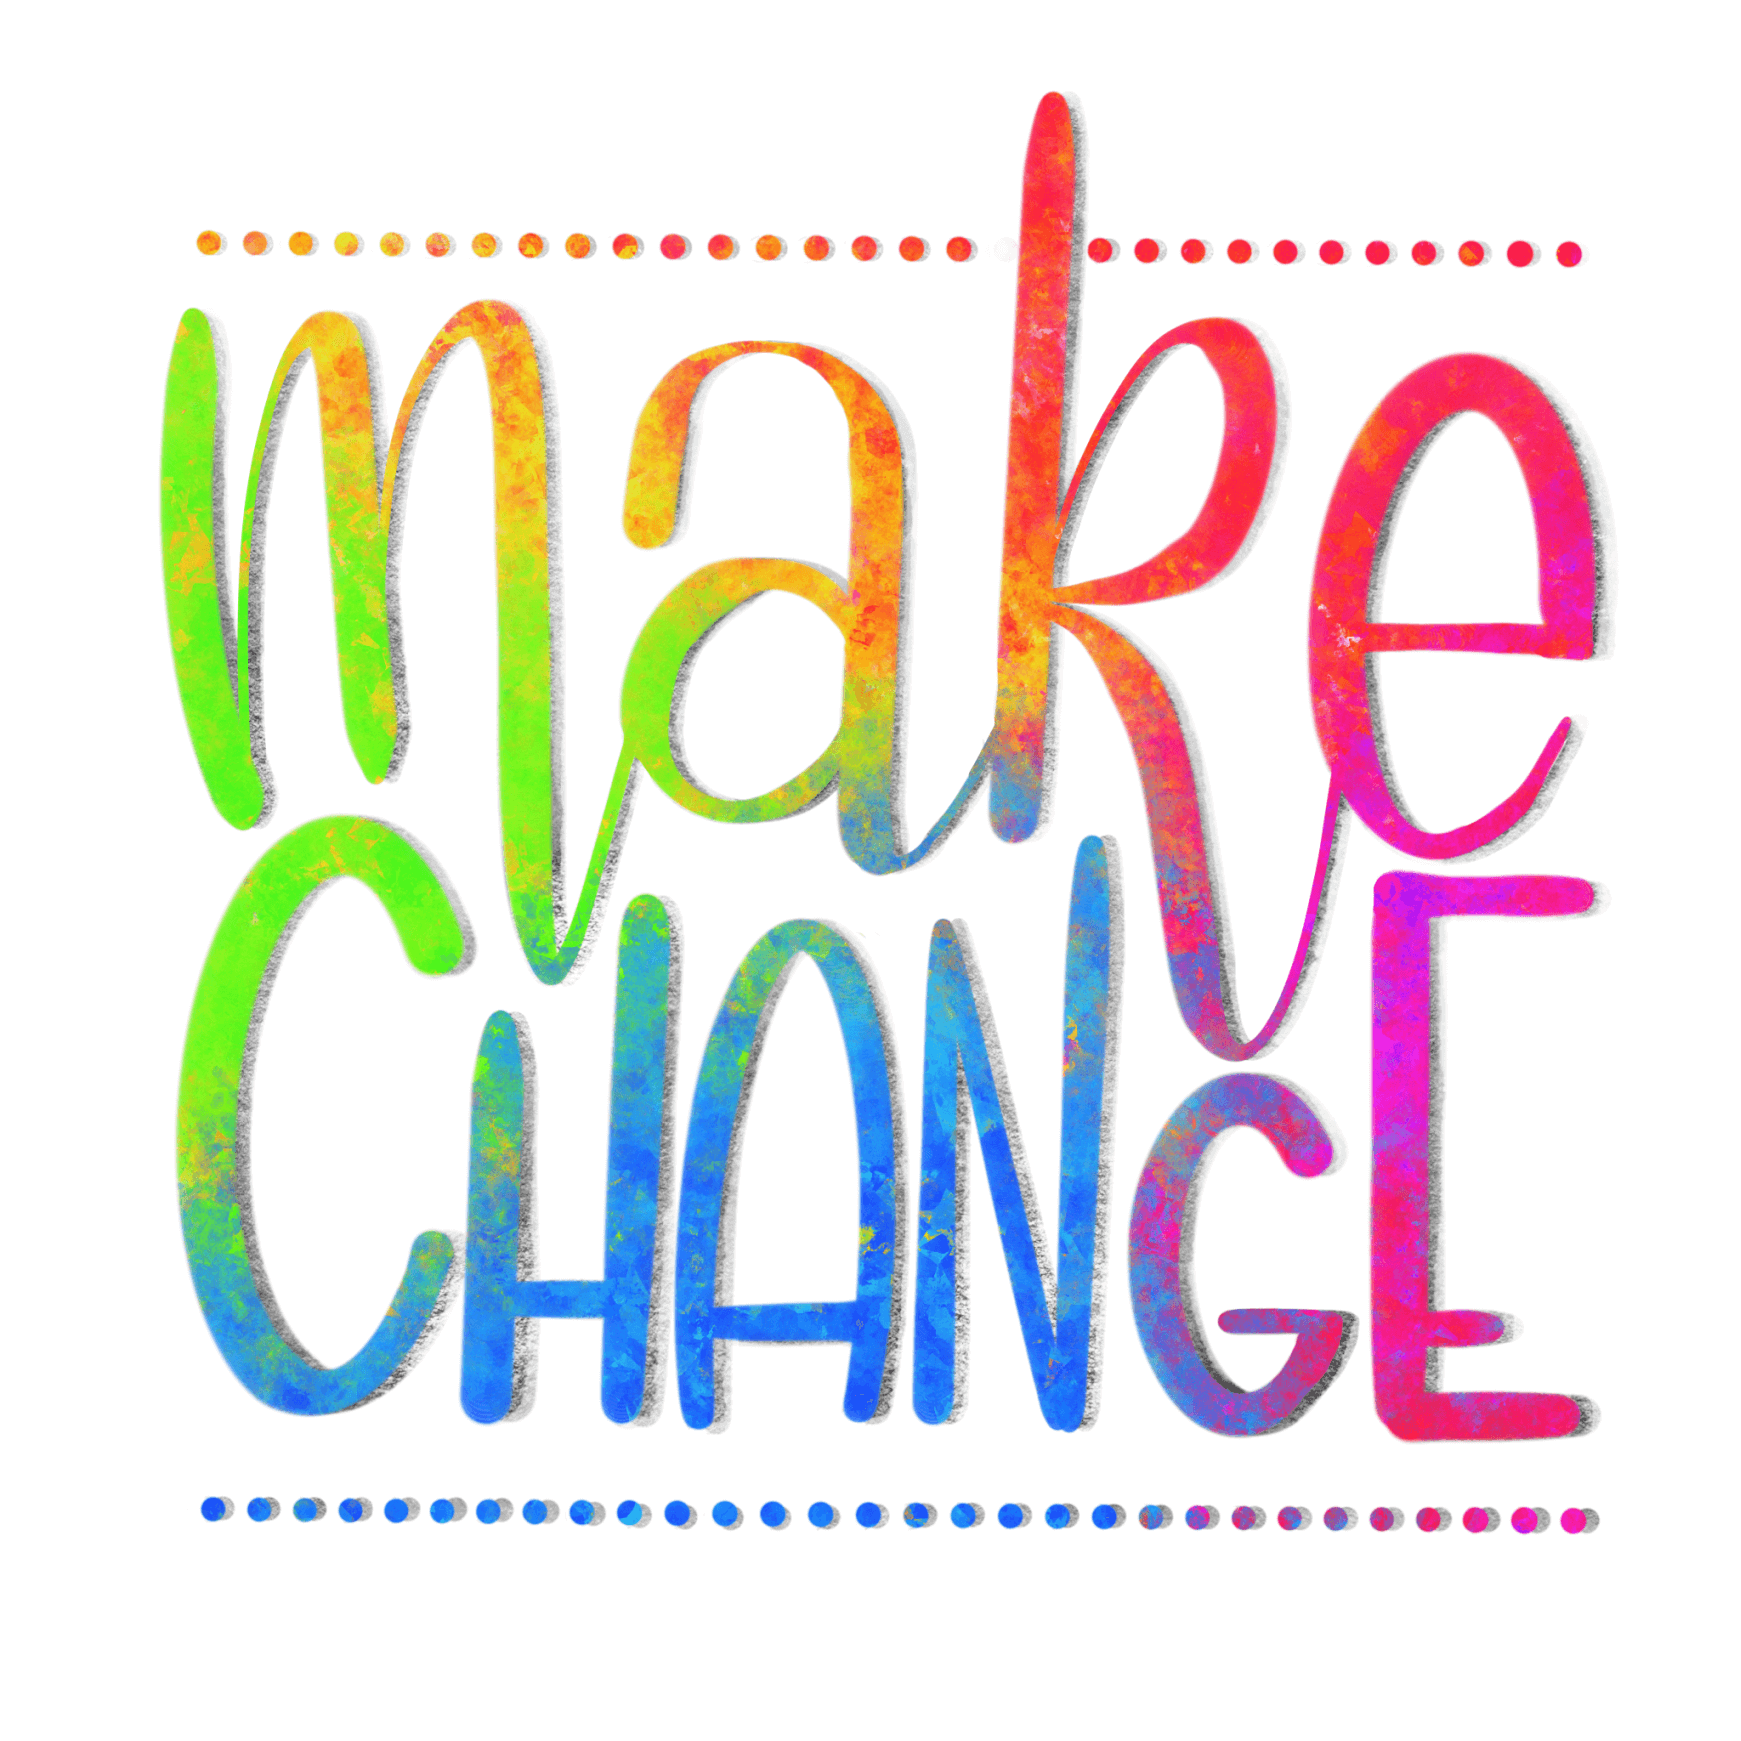 Make Change - Elspeth Cloake